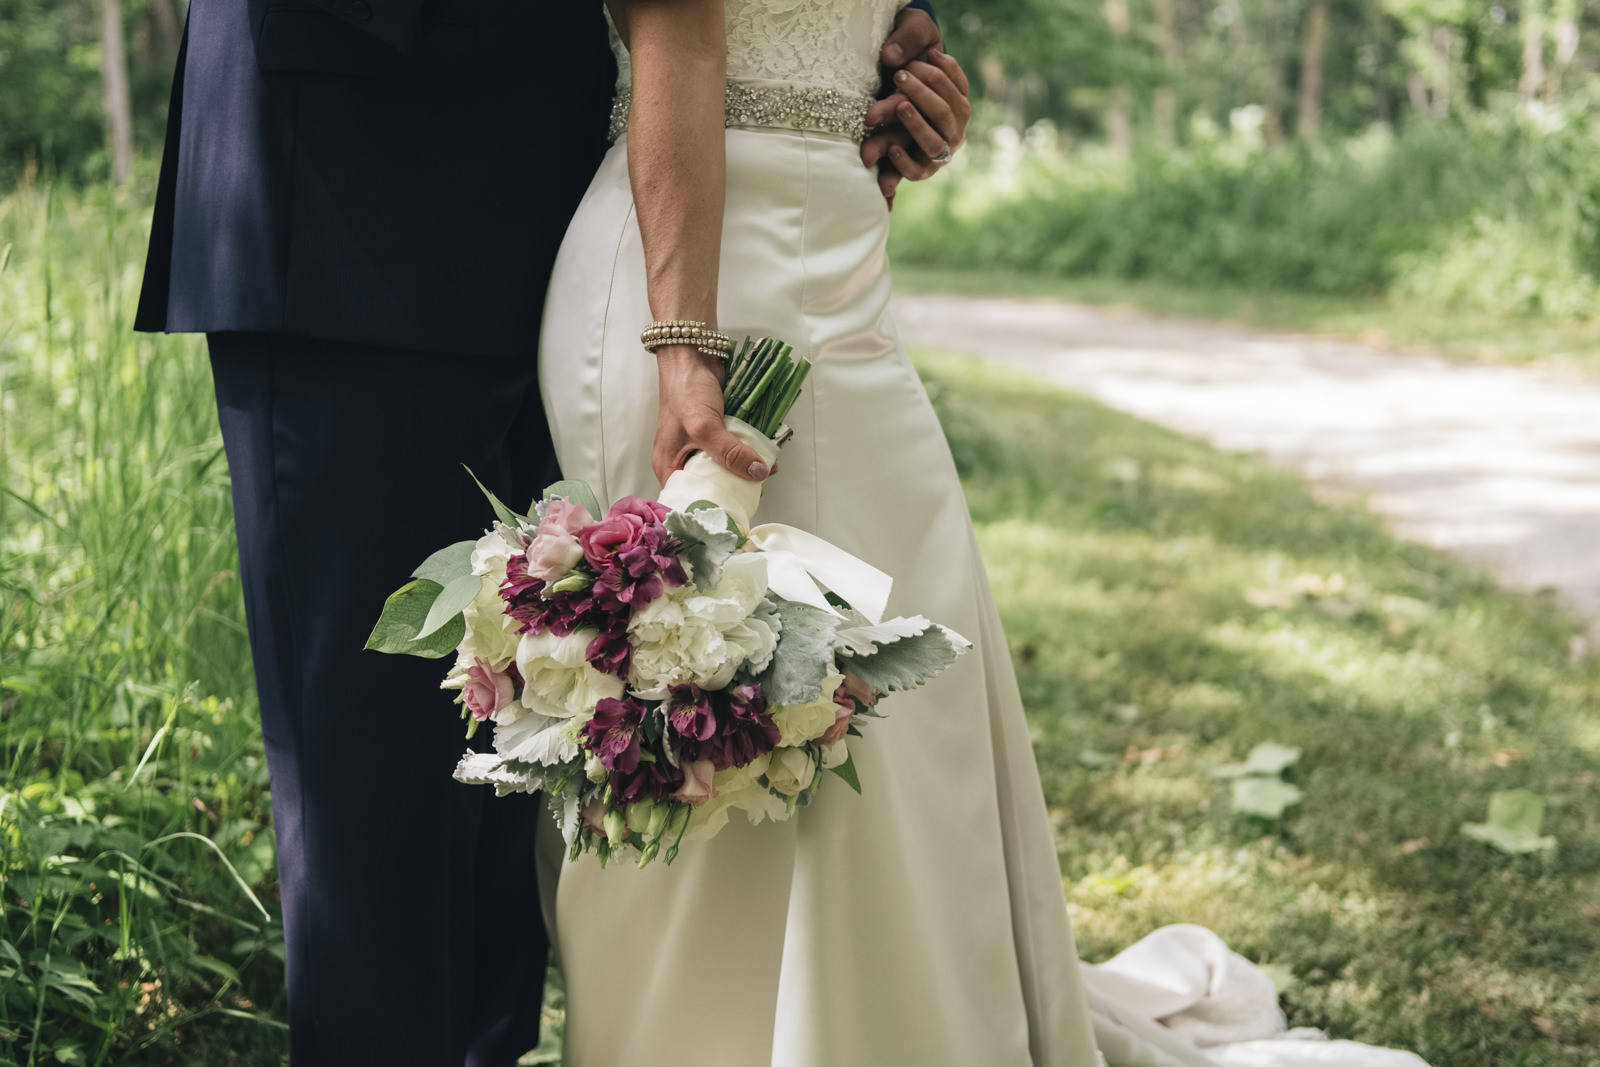 Picture of the bride and groom before their wedding ceremony at Swan Creek MetroPark in Toledo, Ohio.